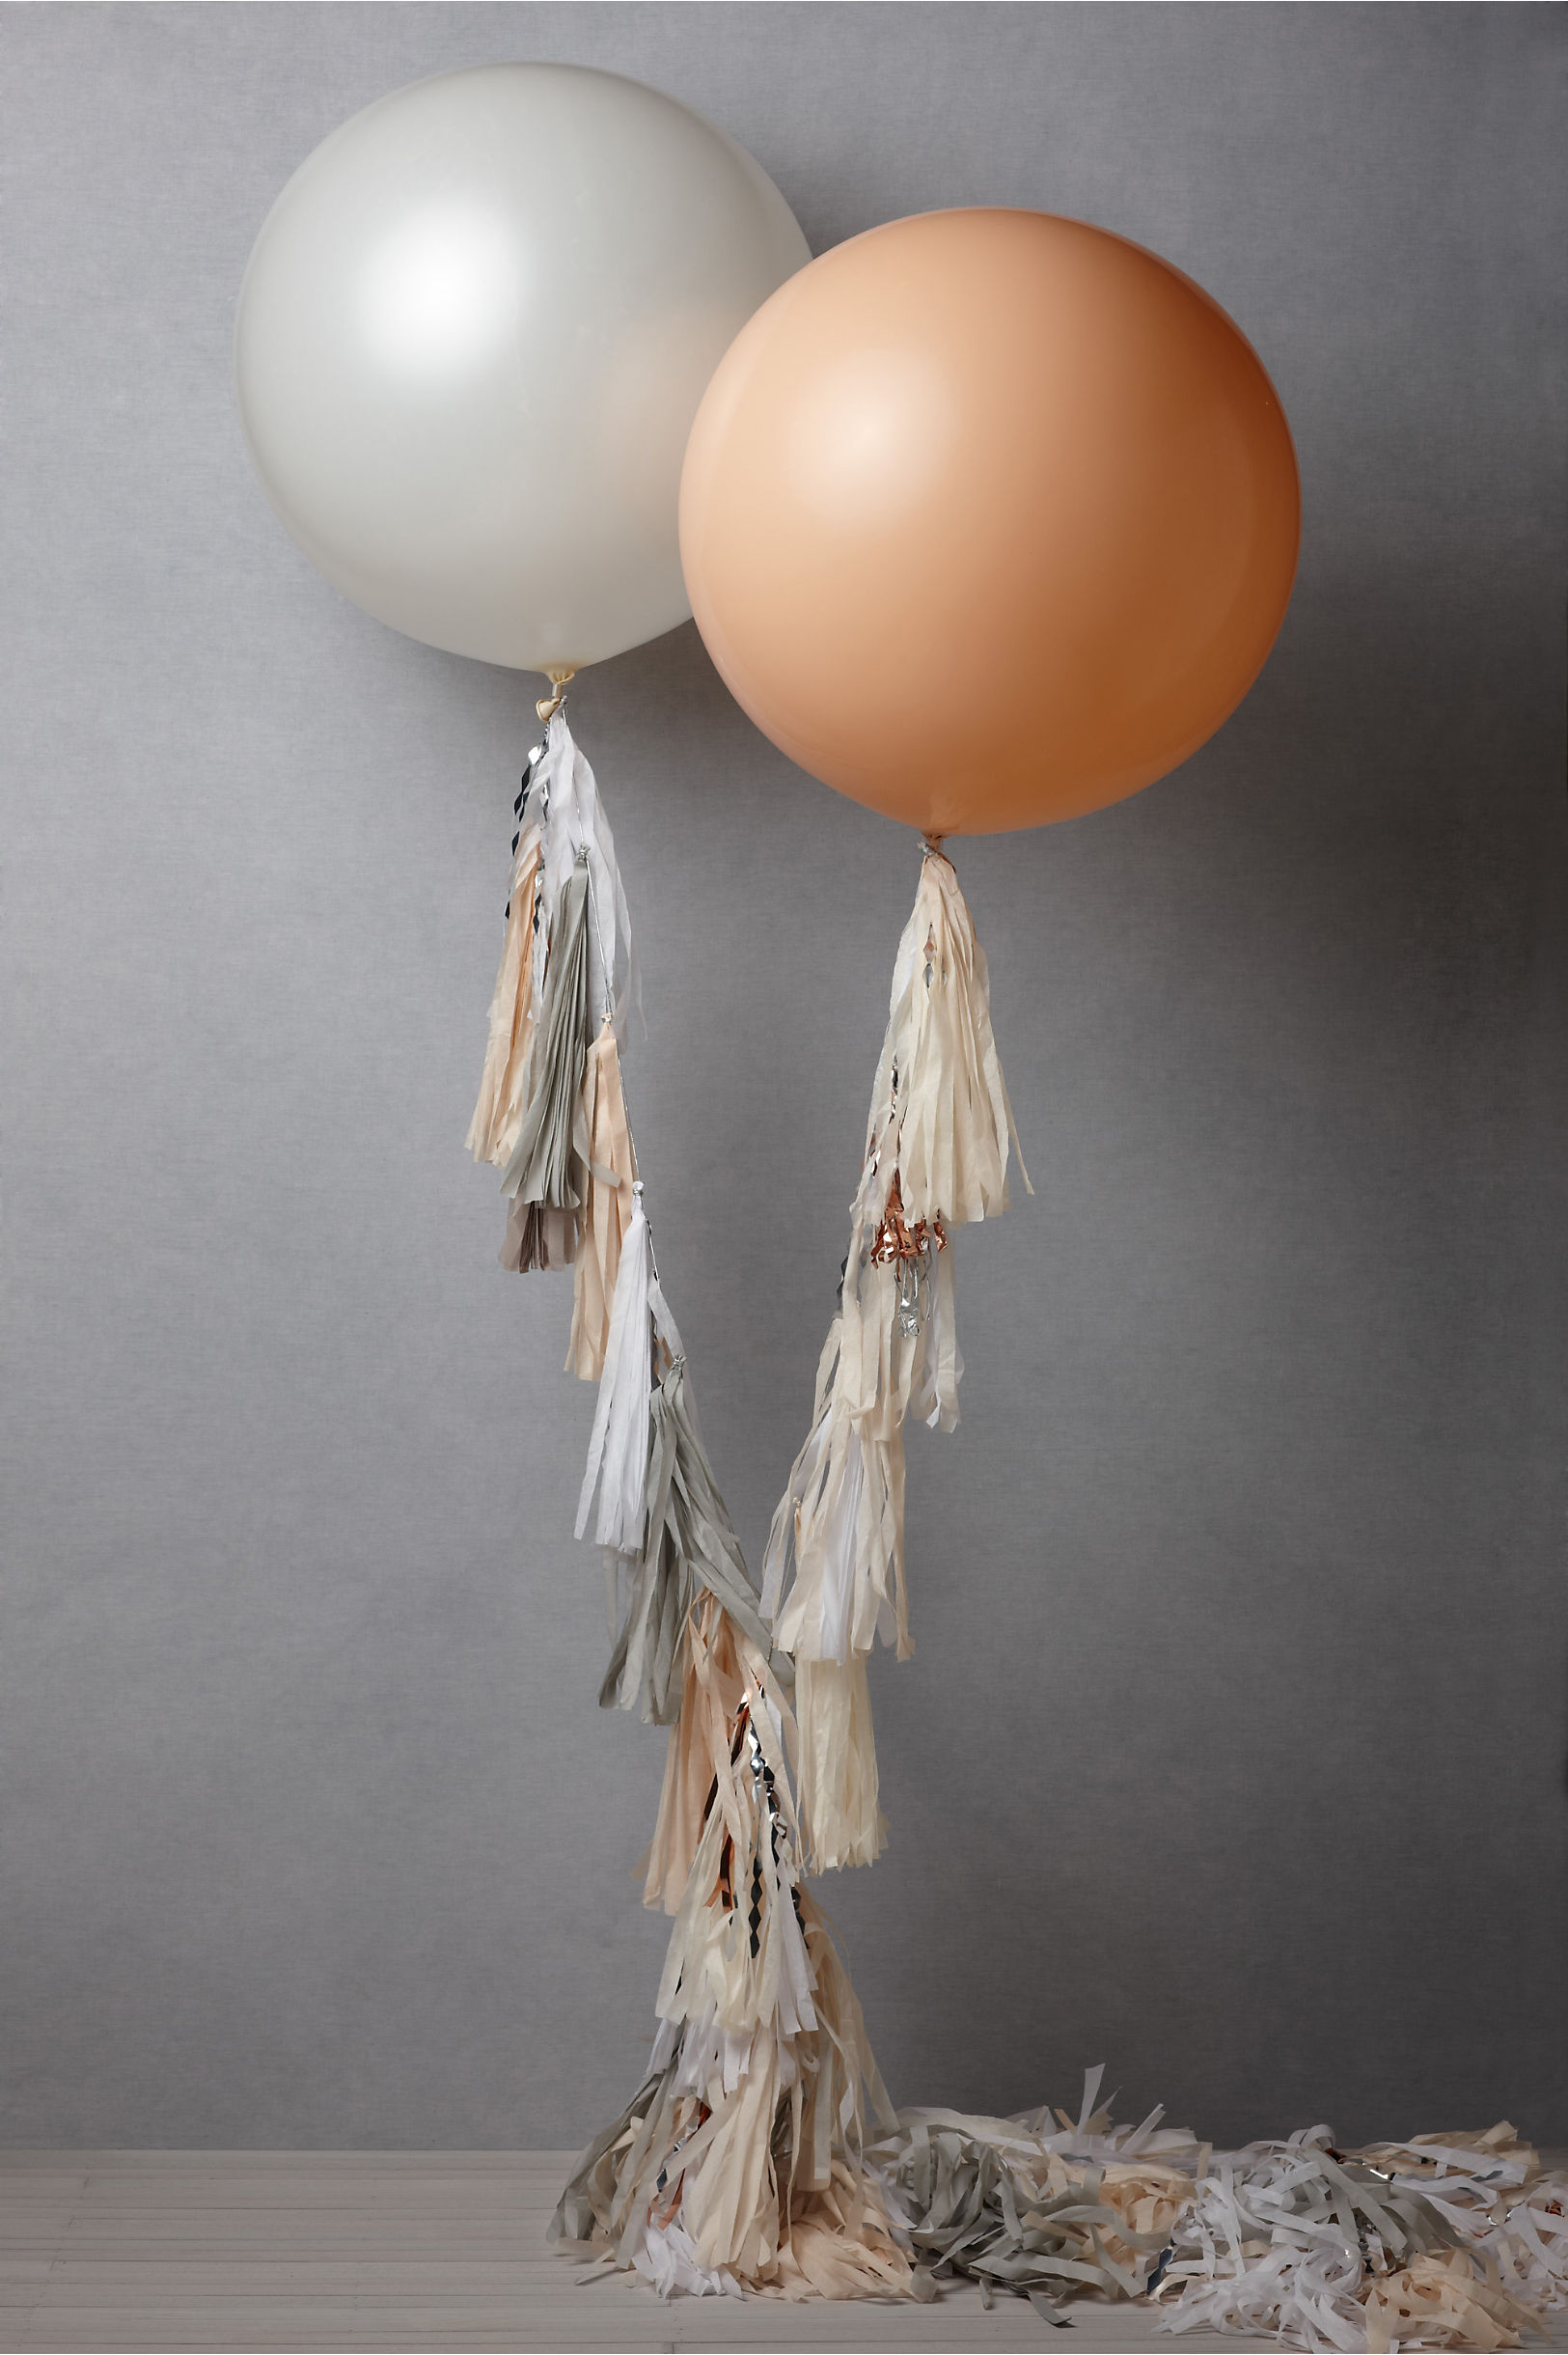 Bhldn-bridal-accessories-for-vintage-weddings-wedding-reception-decor-balloons.original